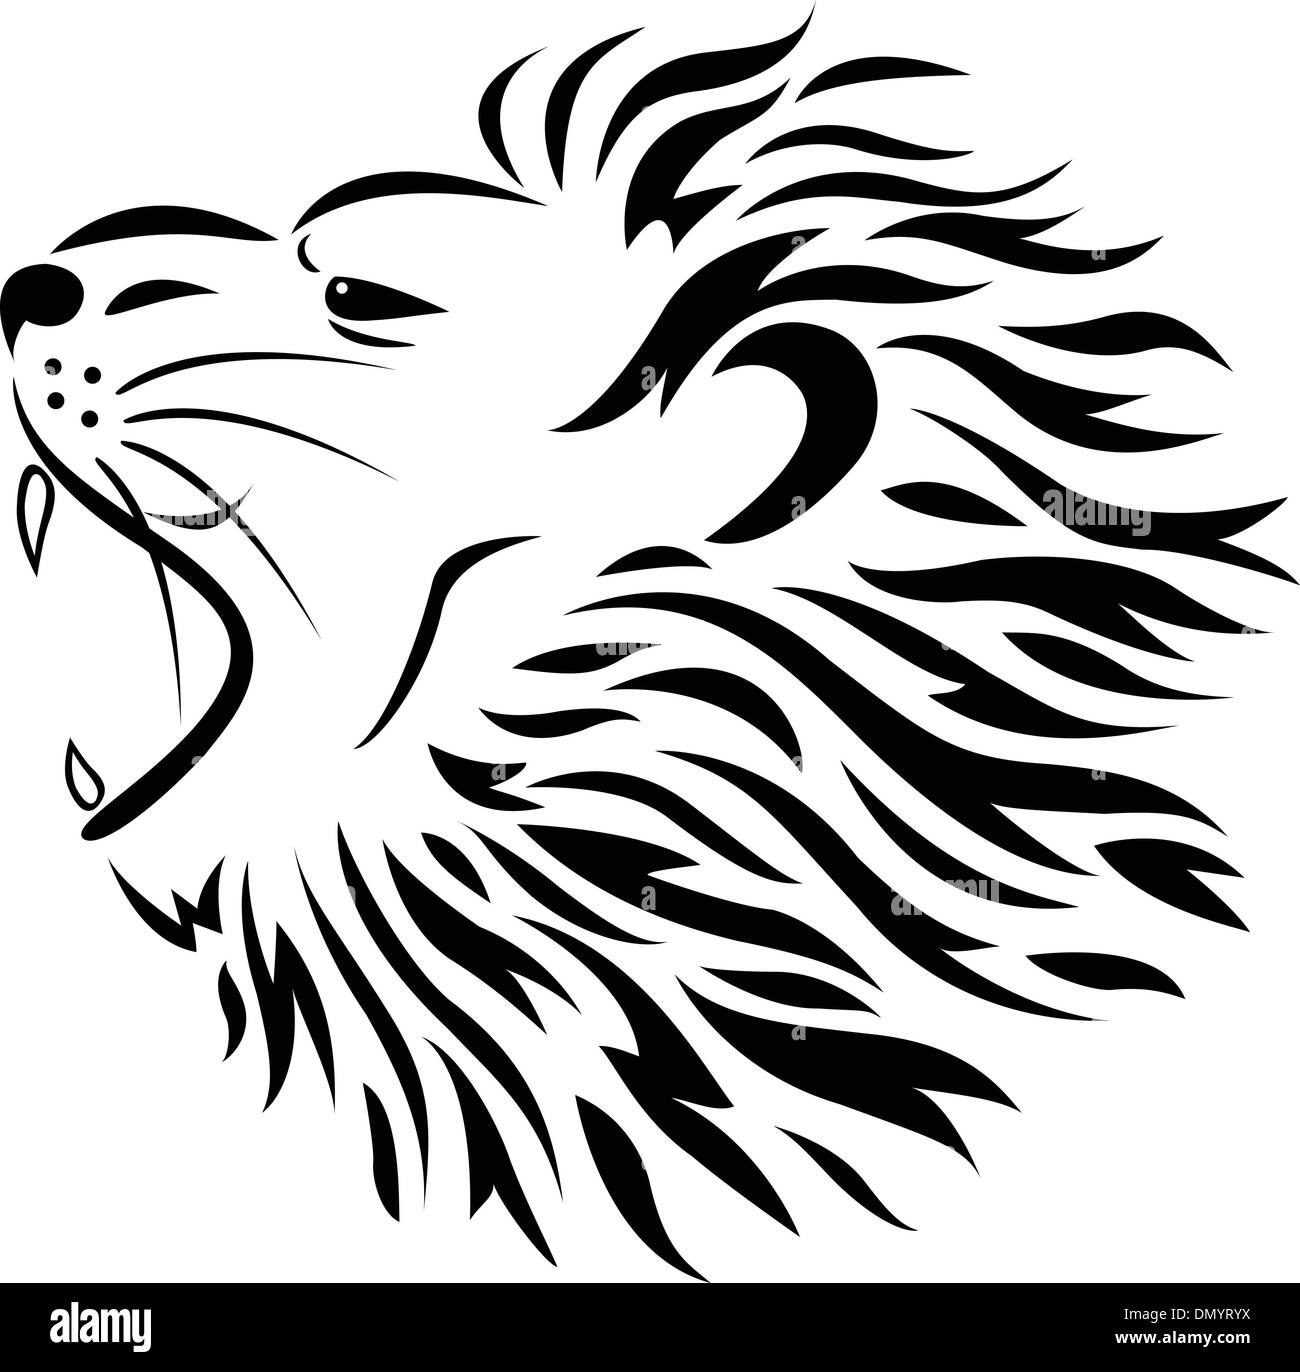 Outline Lion Head Animal Vector High Resolution Stock Photography And Images Alamy Download this premium vector about lion head outline illustration, lion head vector, and discover more than 10 million professional graphic resources on freepik. https www alamy com lion head tattoo image64535742 html